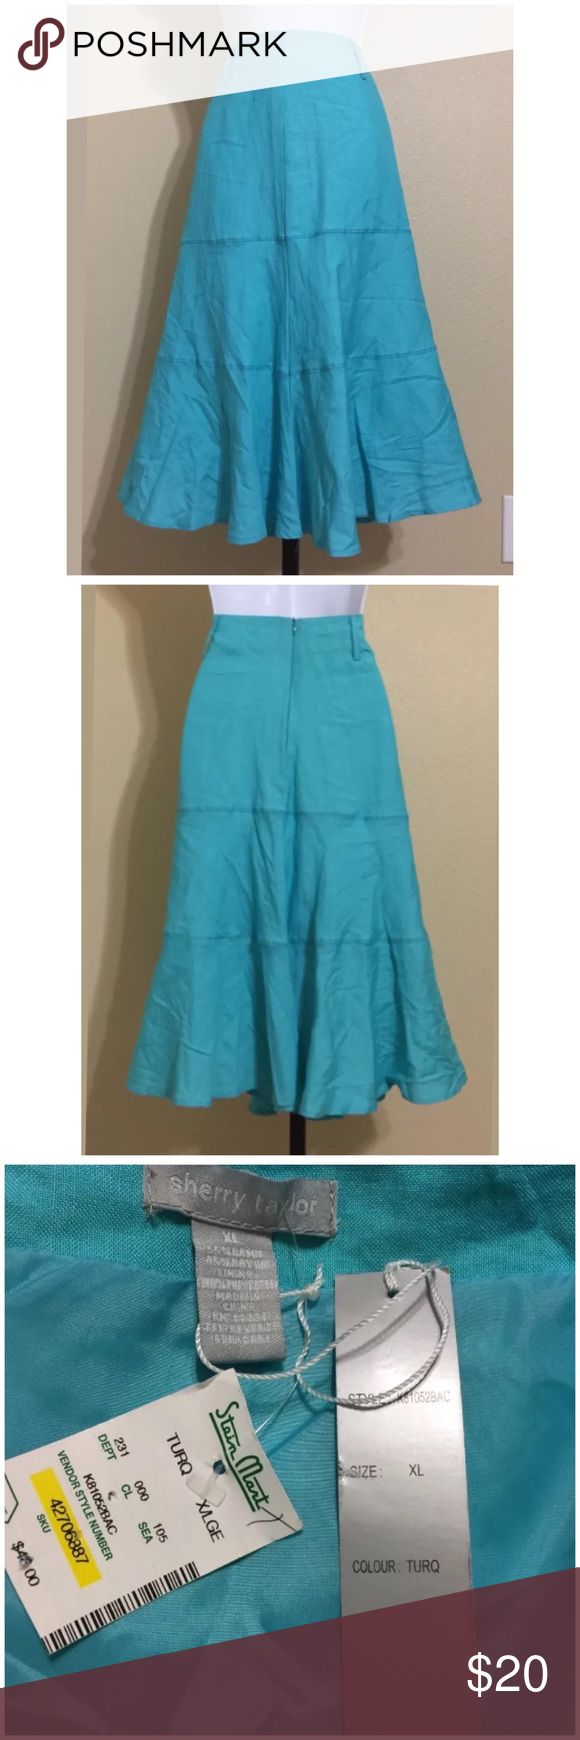 Sherry Taylor Turquoise Skirt Size XL Sherry Taylor Women's Trumpet Style Skirt Size XL Blue Color Side Zip Lined Machine Washable 55% Ramie 45% Rayon Lining 100% Polyester Waist Approx. 34 Inches Hips Approx. 42 Inches Front Length Approx. 28 Inches Rear Length Approx. 28 Inches Sweep Approx. 88 Inches Compare Measurements To Your Own Well Fitting Garment To Ensure A Great Fit MSRP $ 48.00 New With Tag 3rd Photo shows color better Sherry Taylor Skirts Midi